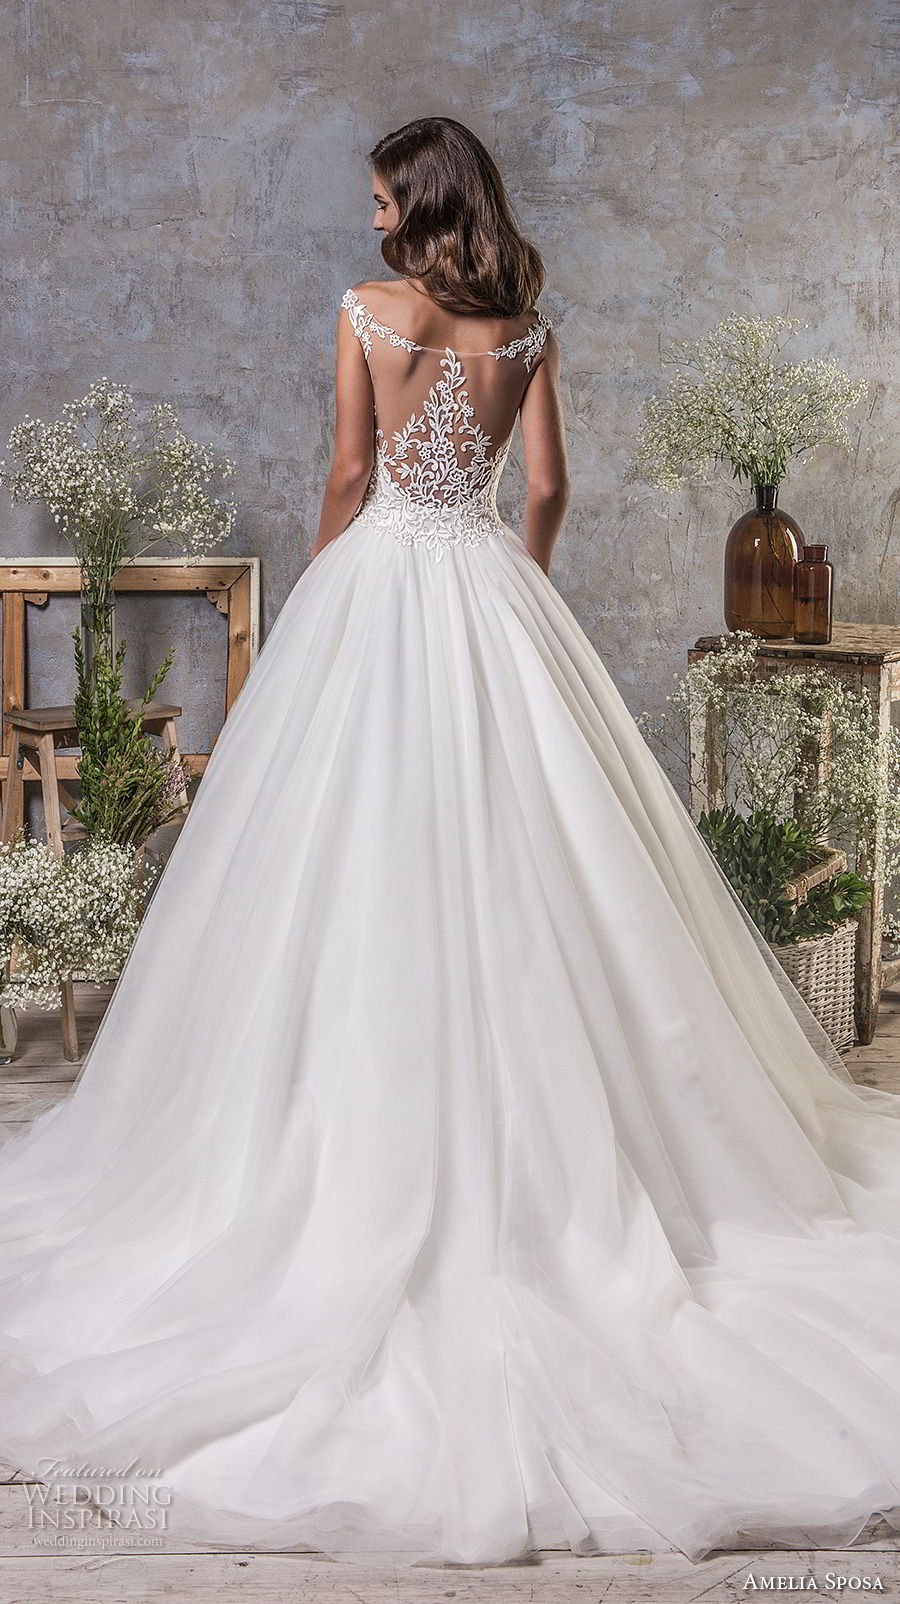 amelia sposa fall 2018 bridal sleeveless illusion bateau sweetheart neckline heavily embellished bodice elegant a line wedding dress sheer lace back chapel train (13) bv